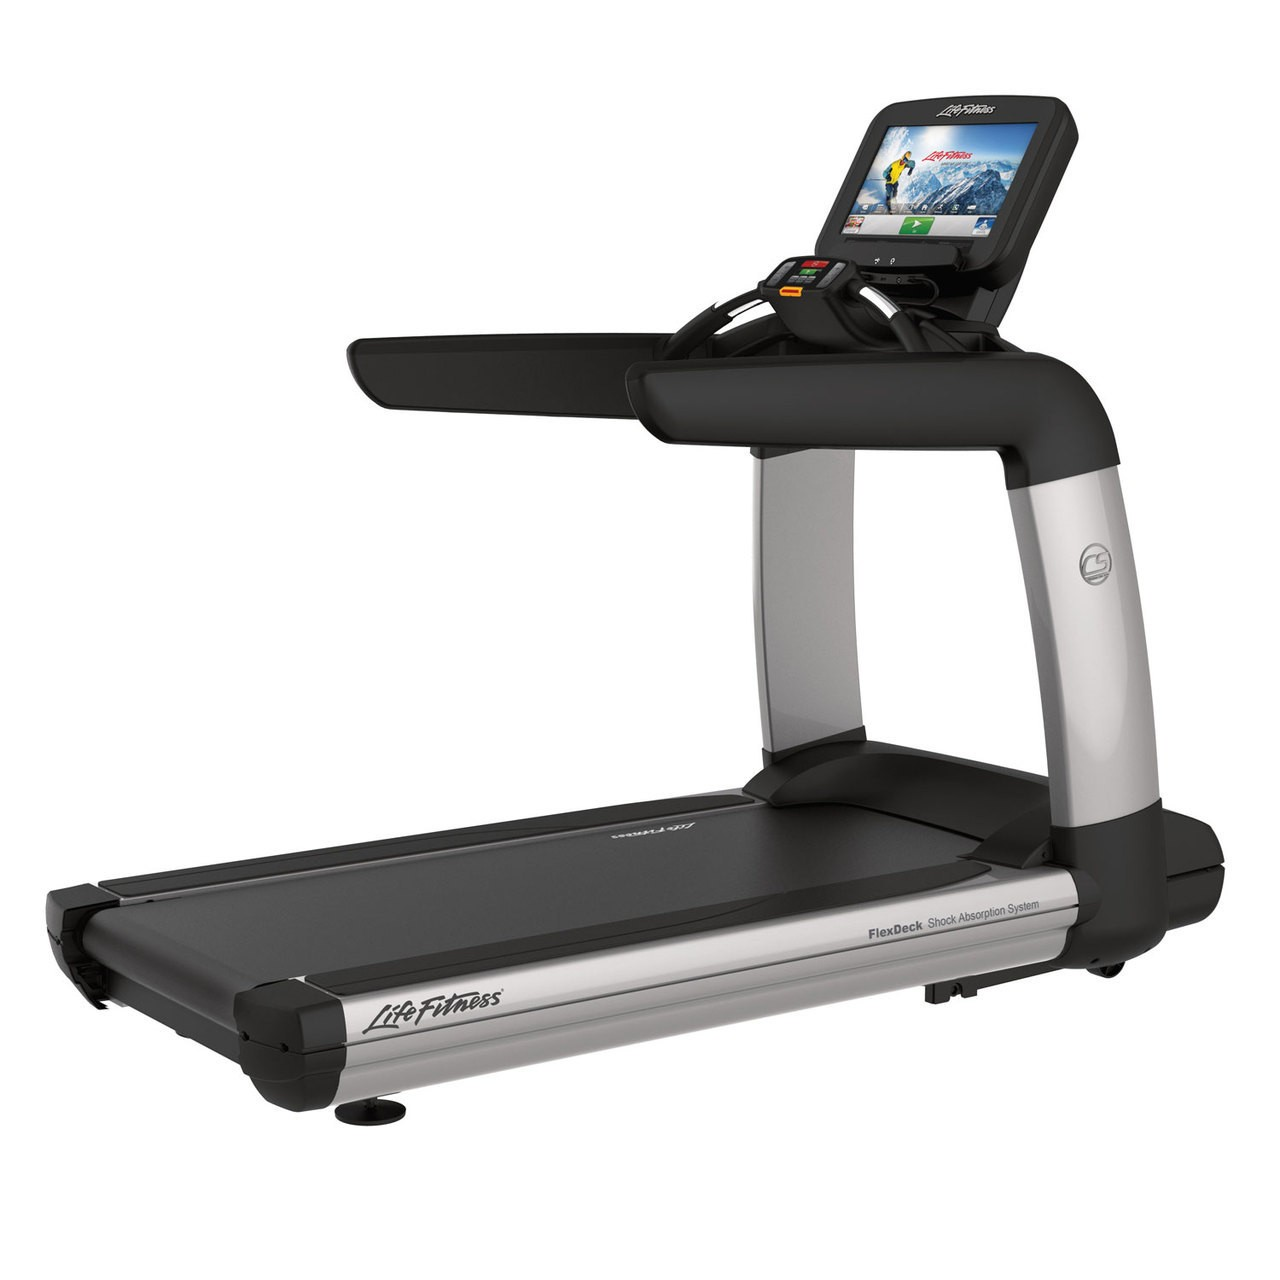 Life Fitness Elevation Series Discover SE Treadmill